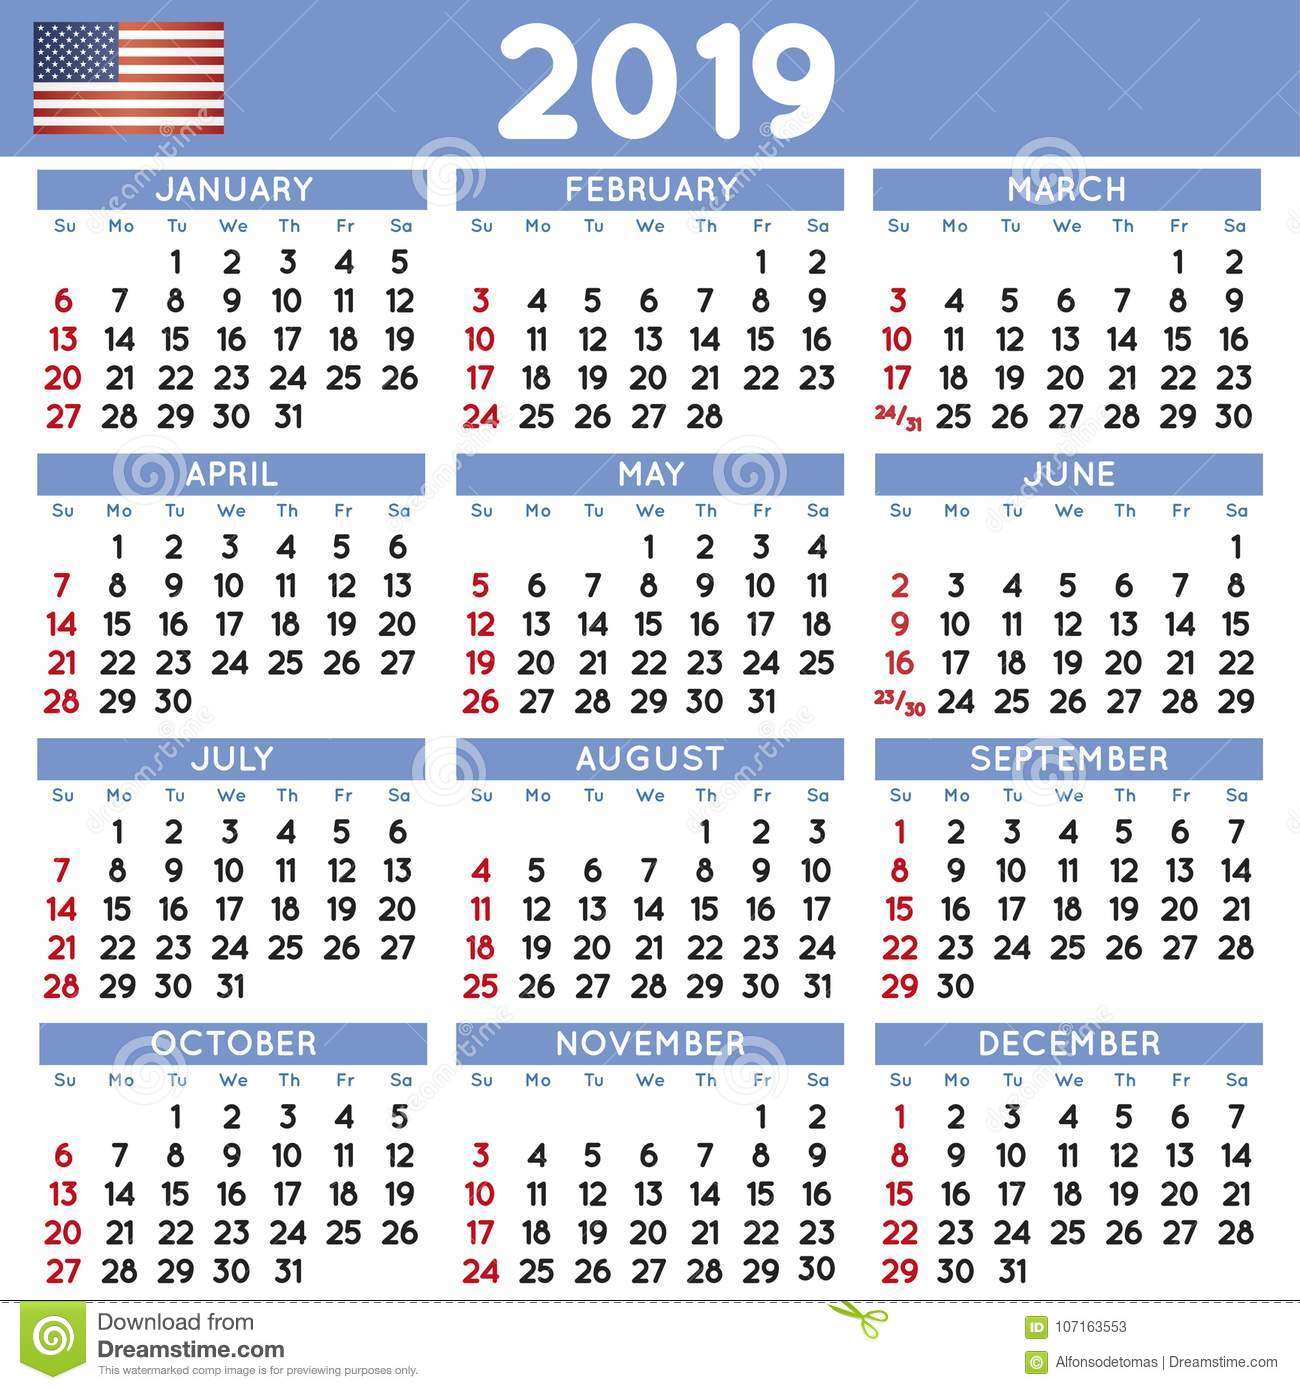 Usa Calendar 2019 2019 Squared Calendar English USA Stock Vector   Illustration of